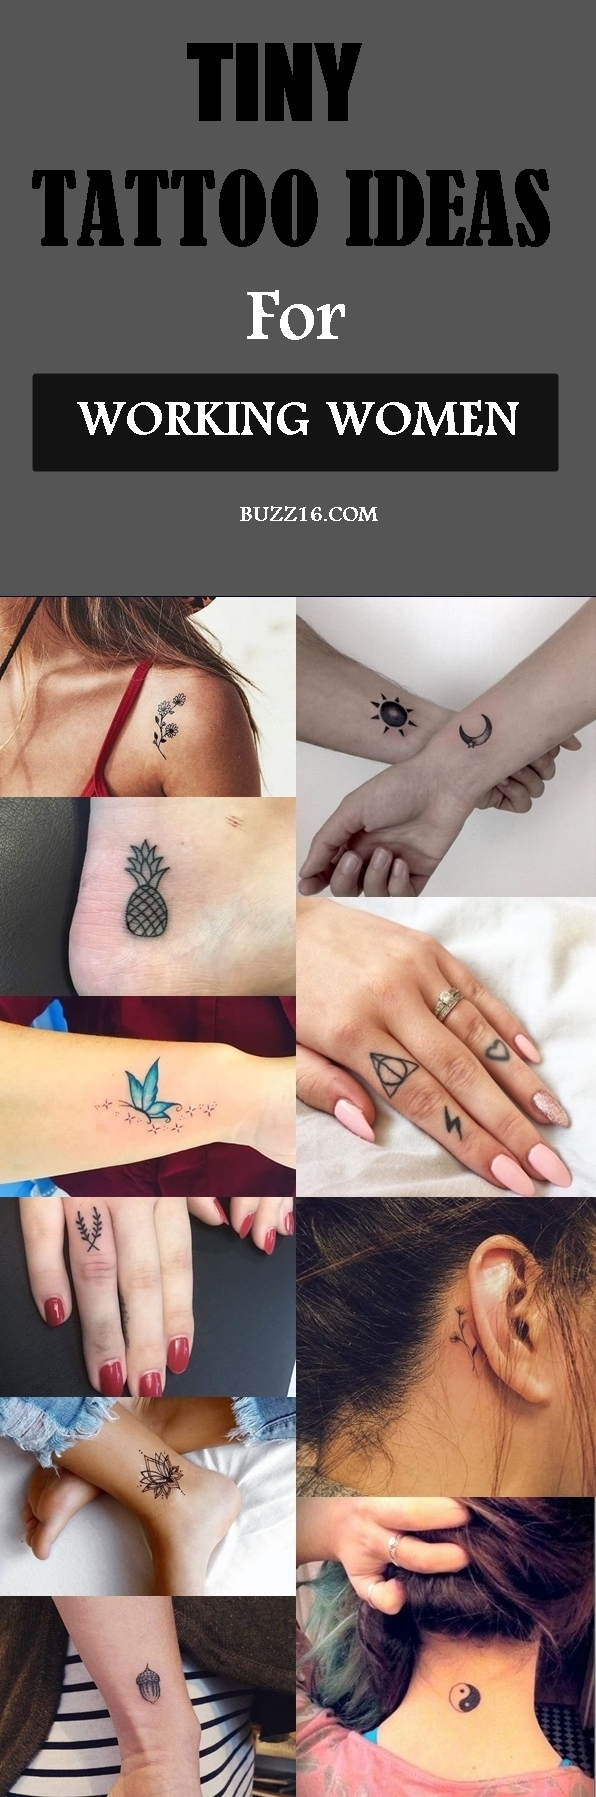 40 Tiny Tattoo Ideas For Working Women